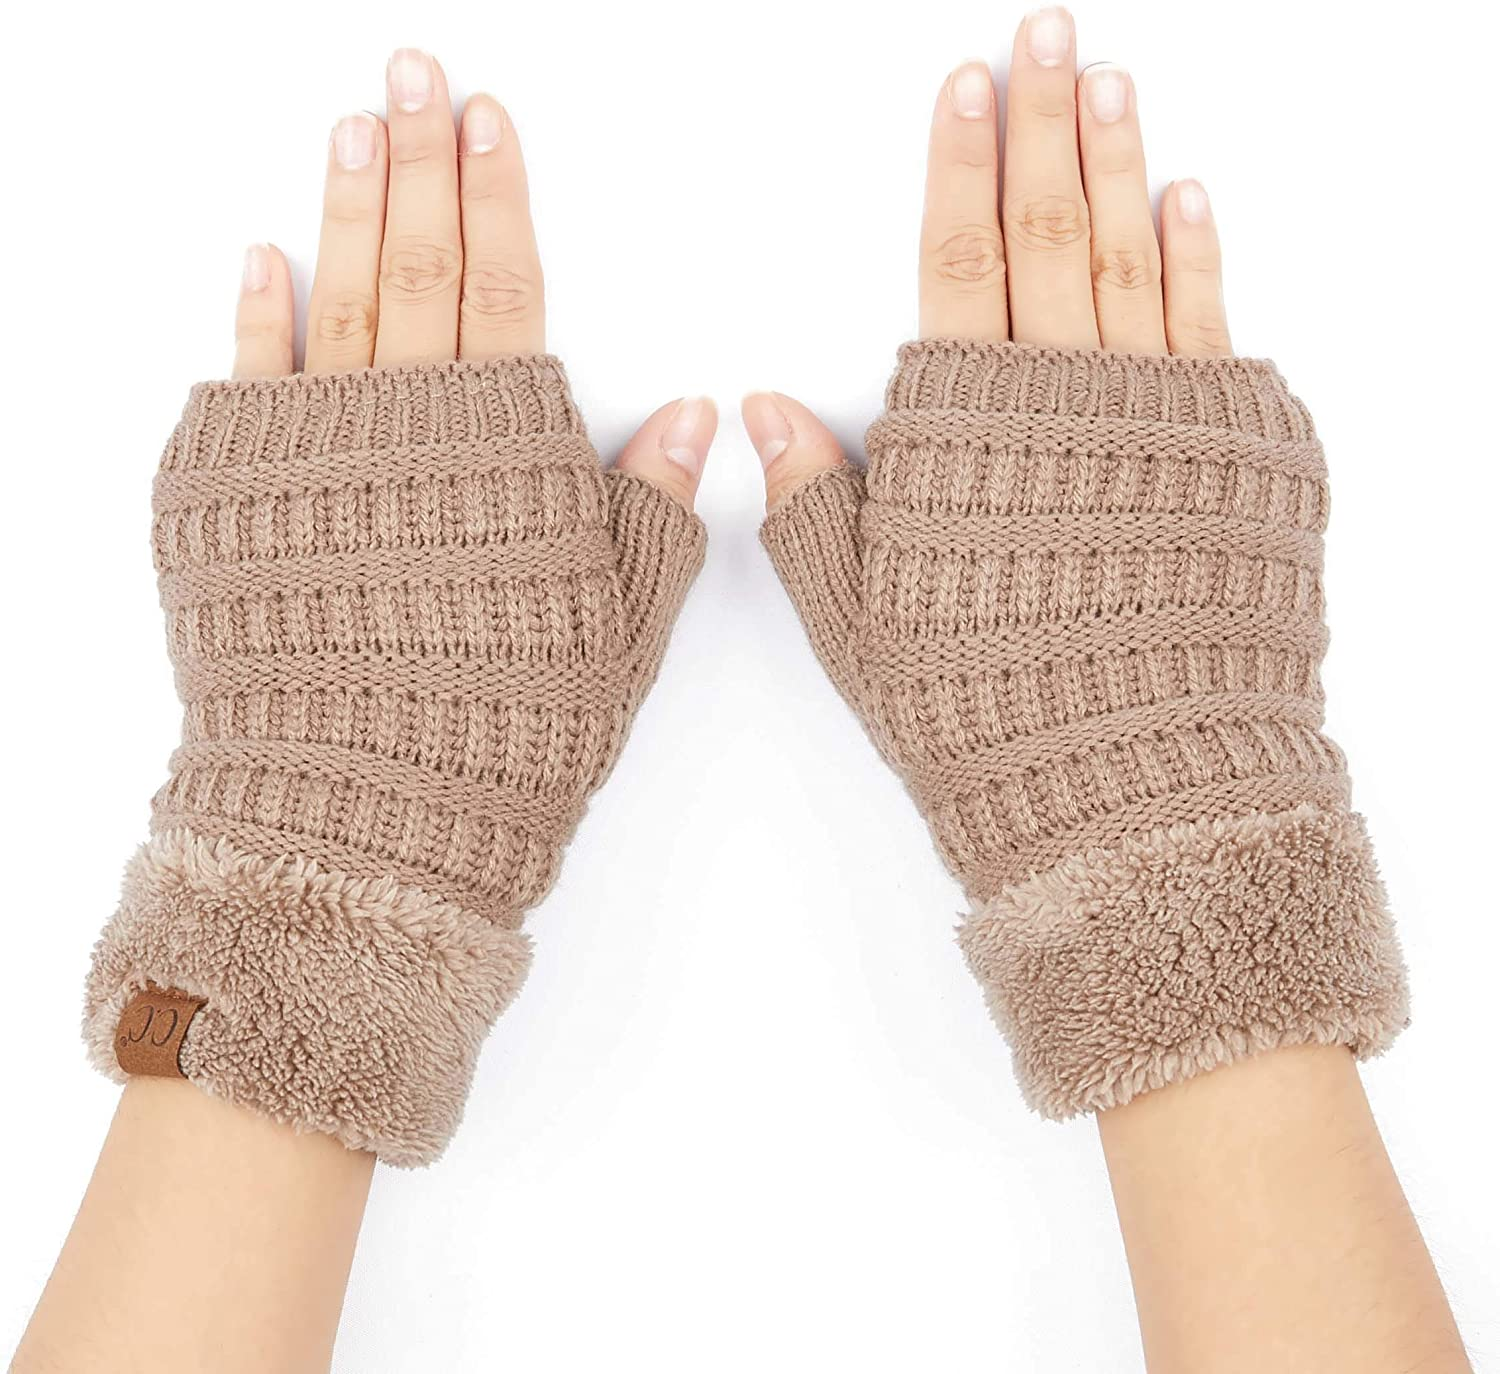 C.C Fingerless Gloves Fuzzy Lined Knit Wrist Warmer Solid Ribbed Glove (FLG-25)